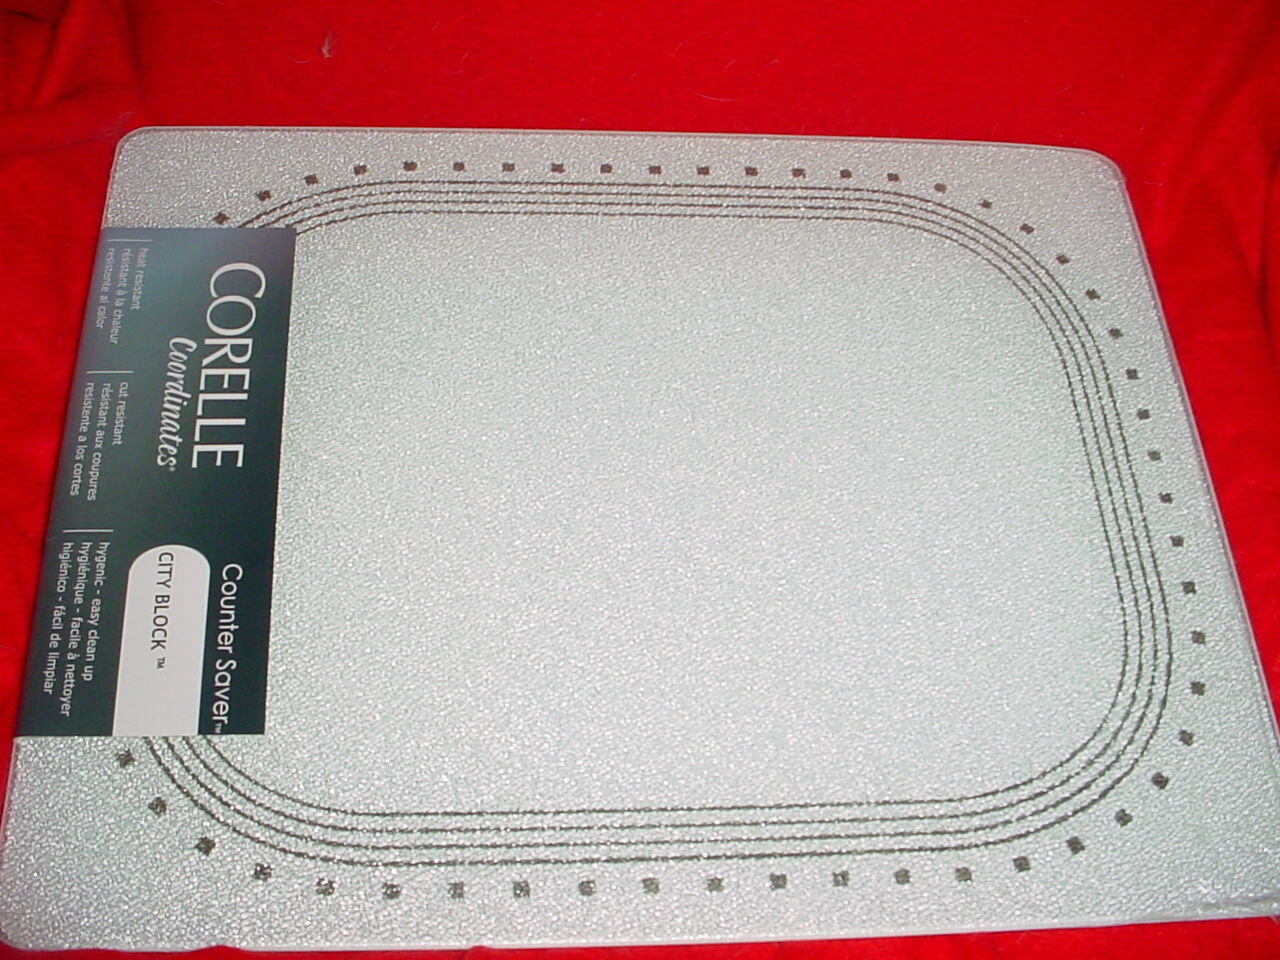 Primary image for CORELLE CITY BLOCK COUNTER SAVER GLASS CUTTING BOARD 12x15 INCH NEW FREE SHIP US